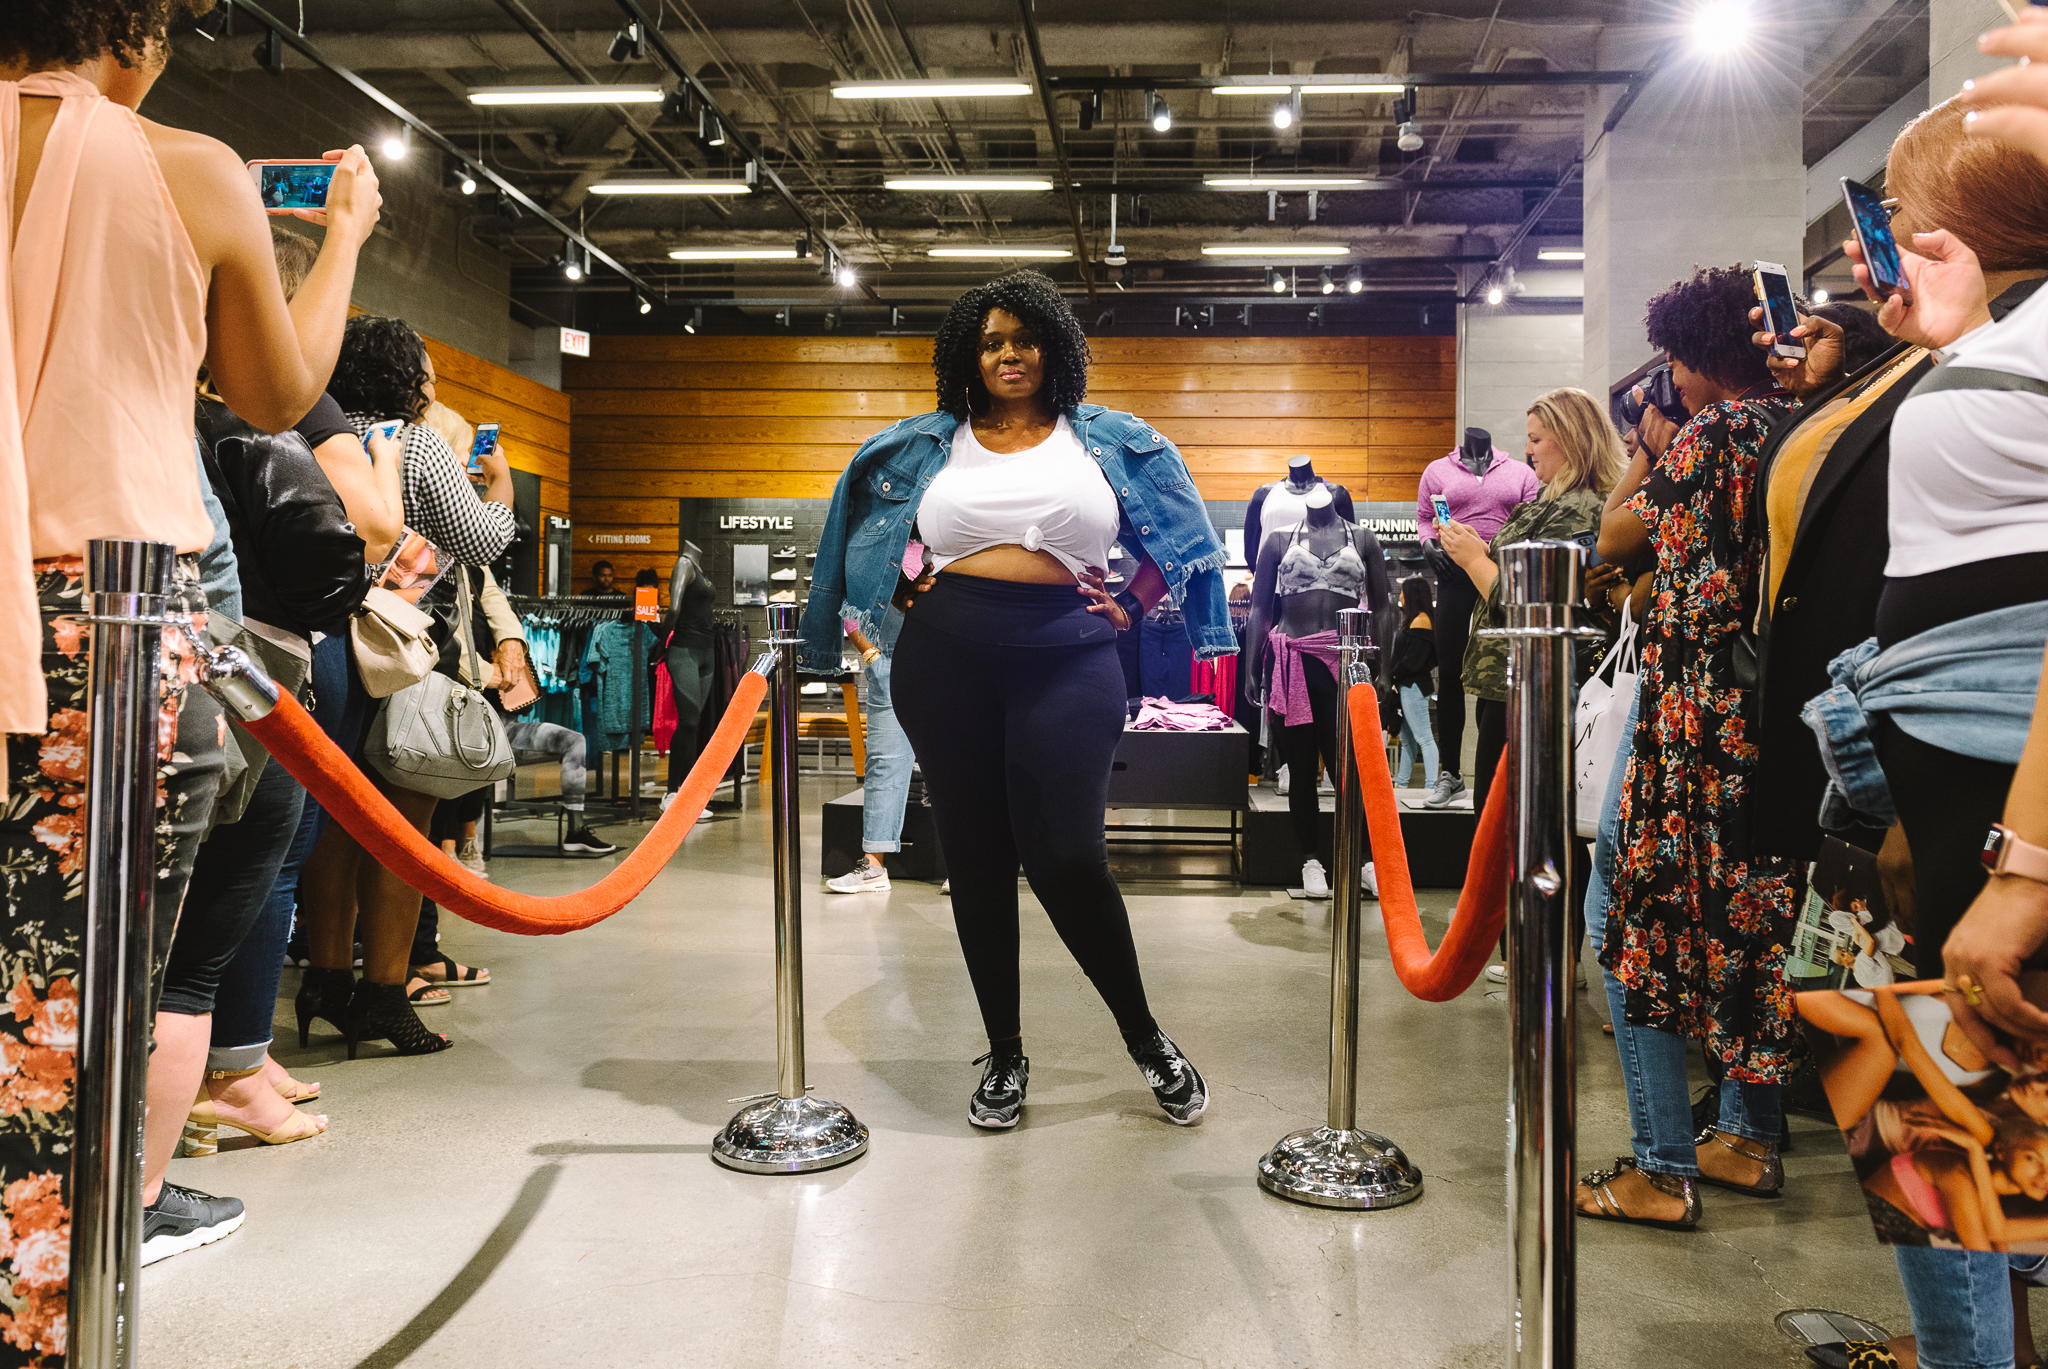 Hayet Rida Chicago Nike Plus Size Line Event Fashion Lifestyle Blogger Nike Air Society Vapor Max 51.jpg